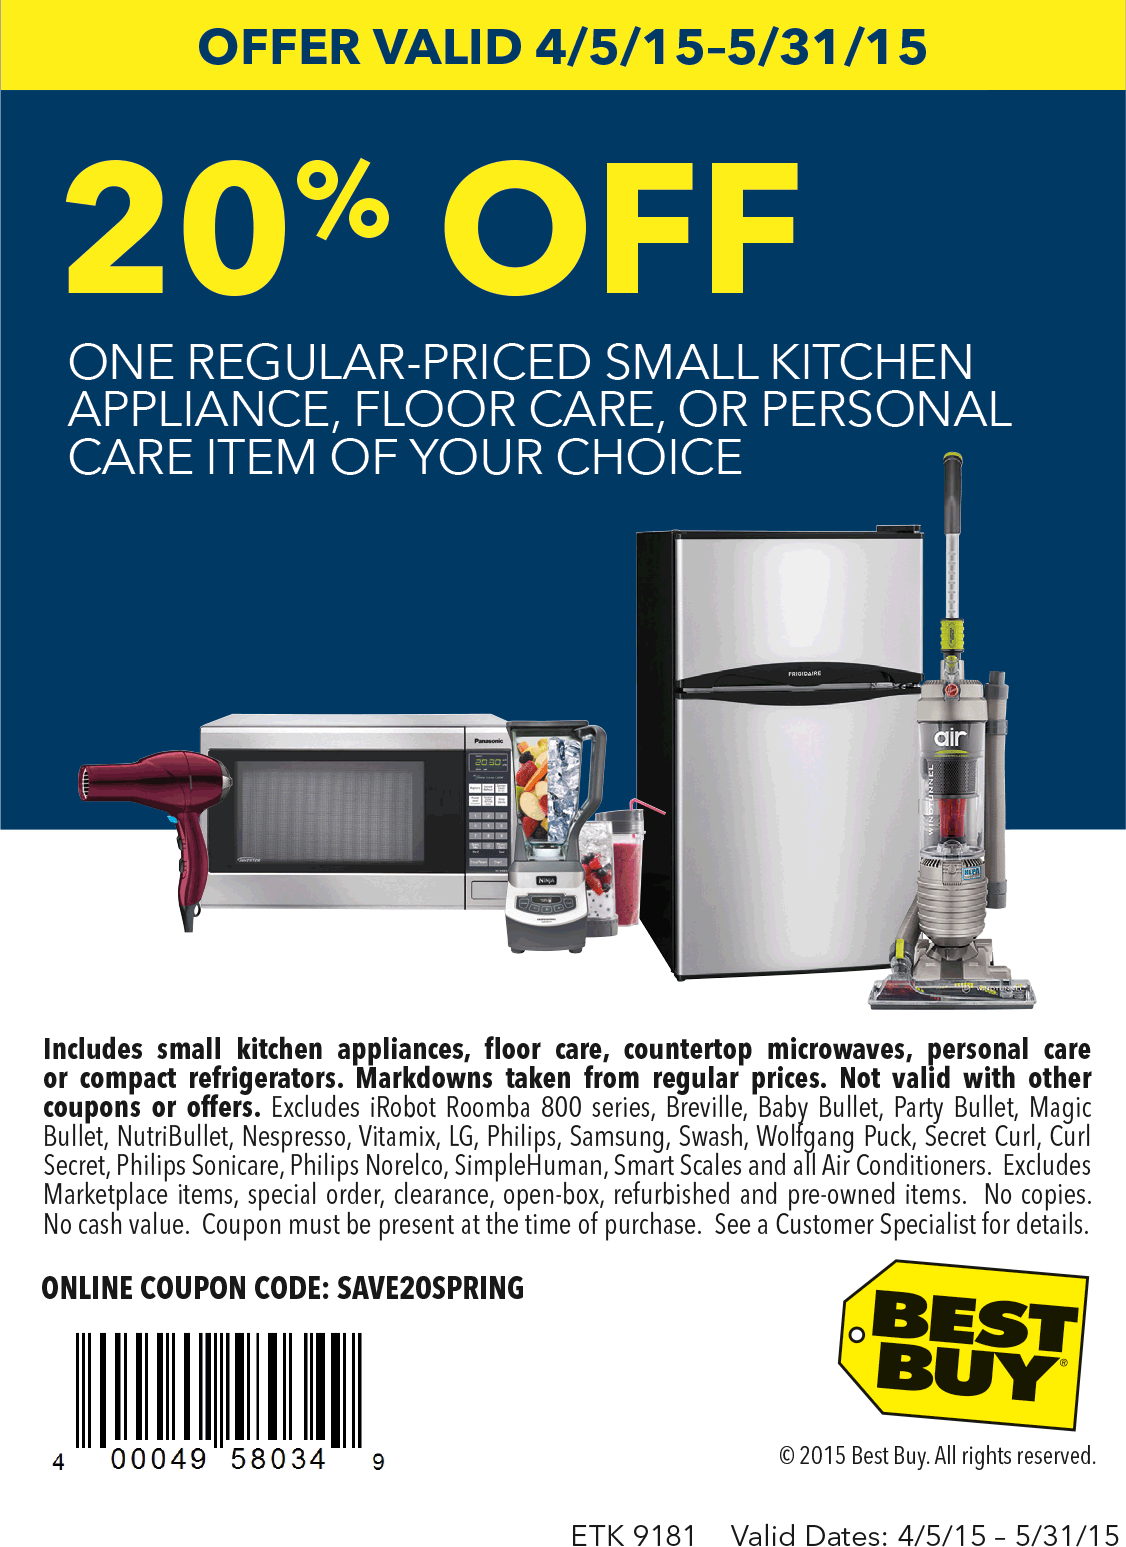 Best Buy Coupon December 2018 20% off a single appliance at Best Buy, or online via promo code SAVE20SPRING